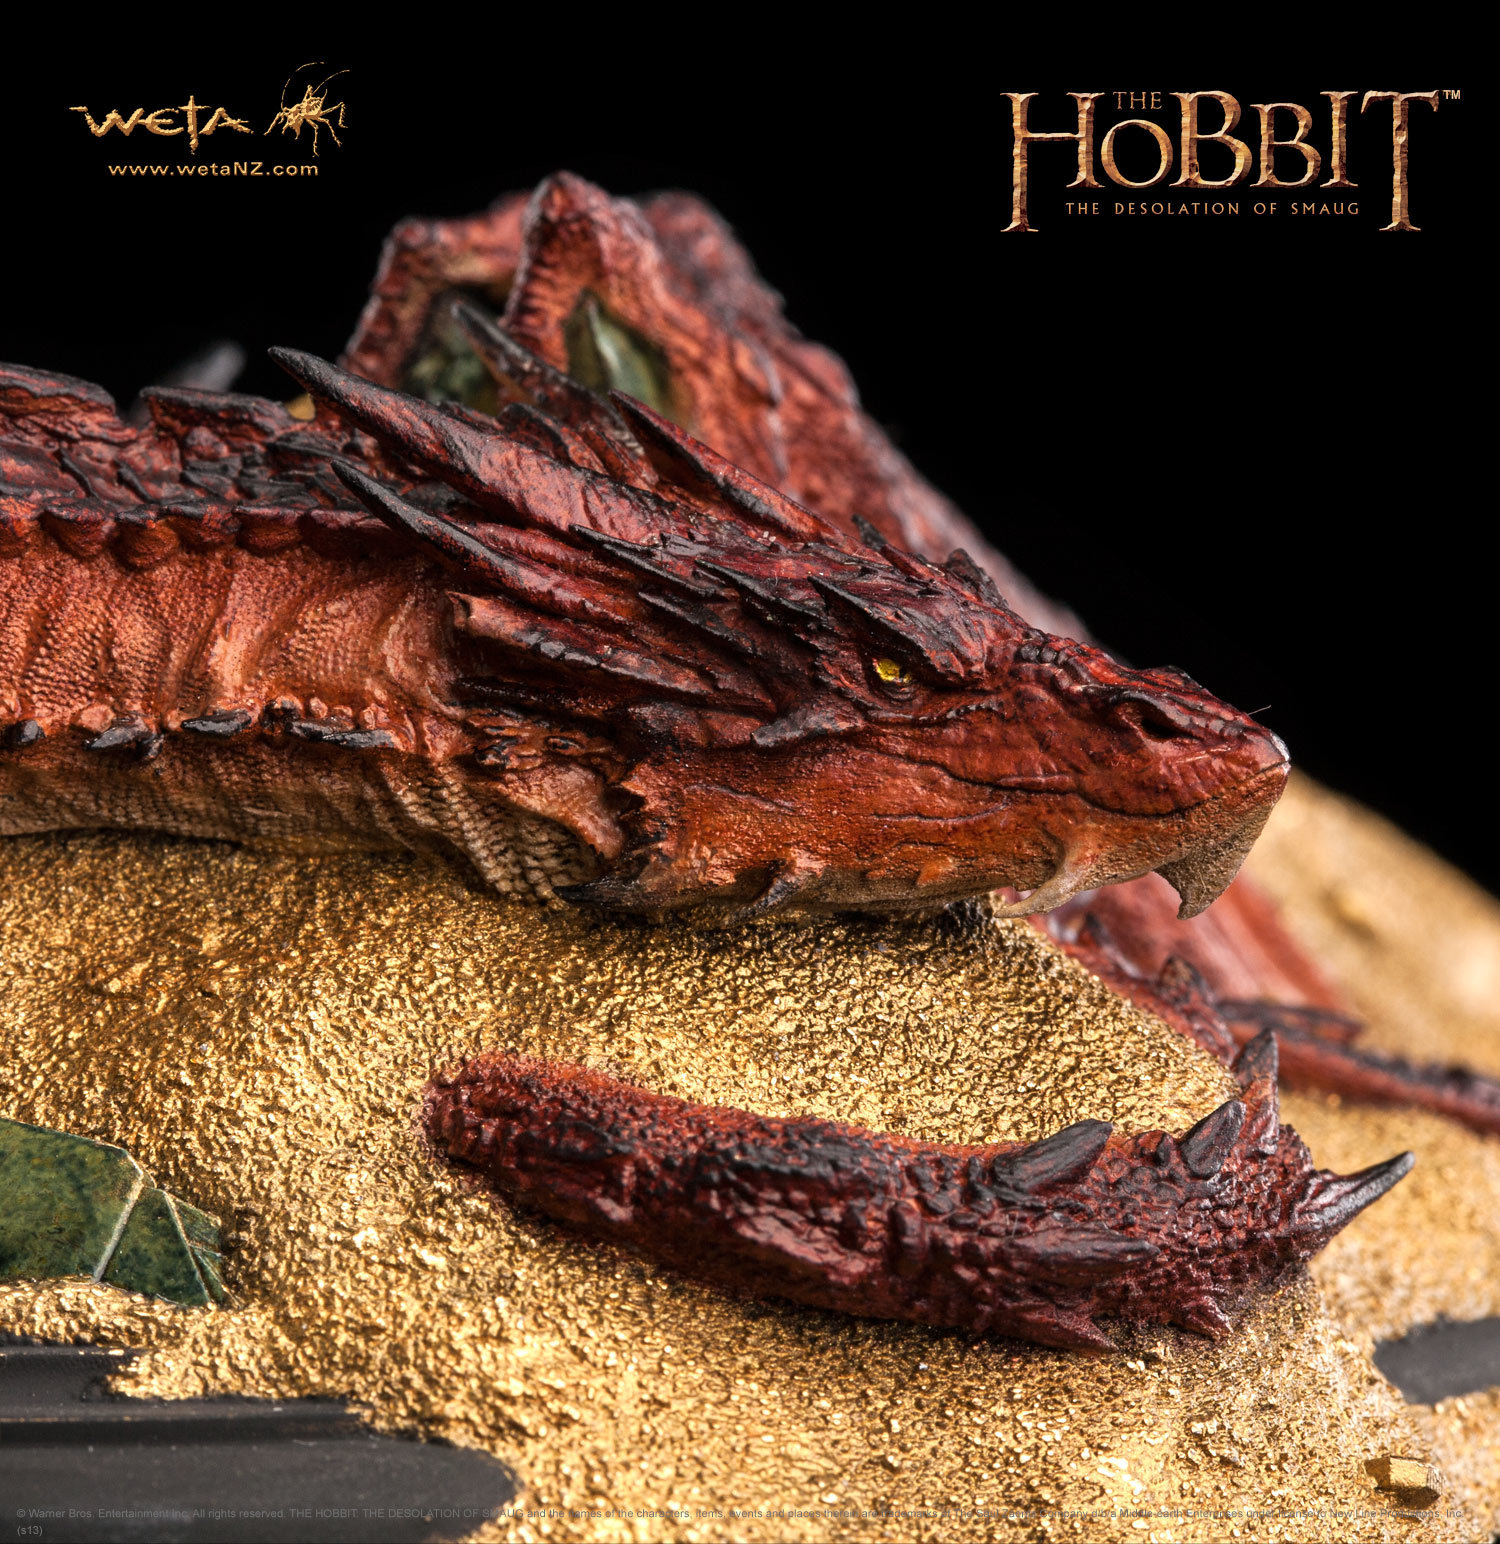 The Hobbit: The Desolation Of Smaug - Smaug - King Under The Mountain image